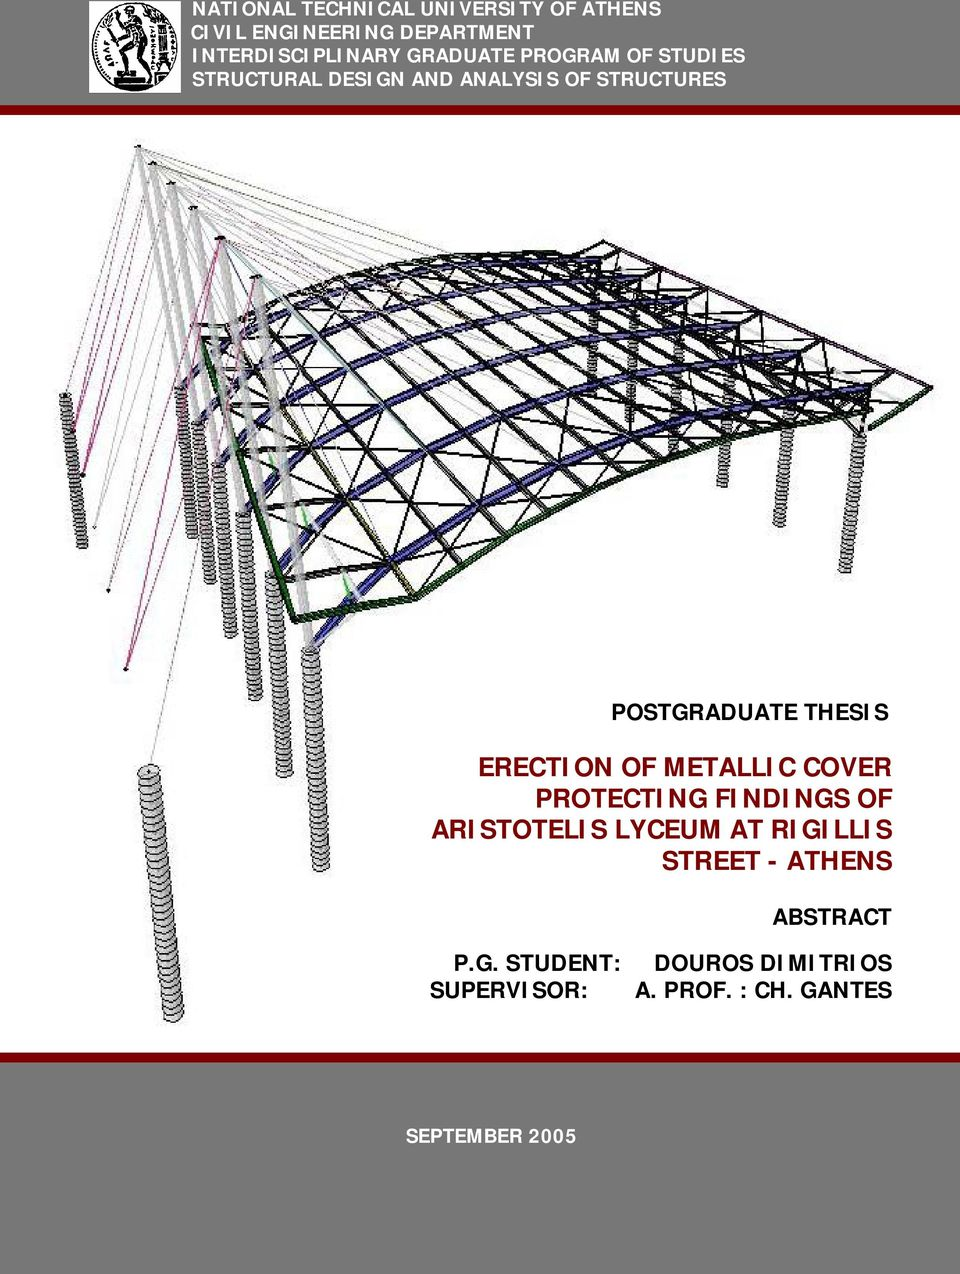 THESIS ERECTION OF METALLIC COVER PROTECTING FINDINGS OF ARISTOTELIS LYCEUM AT RIGILLIS